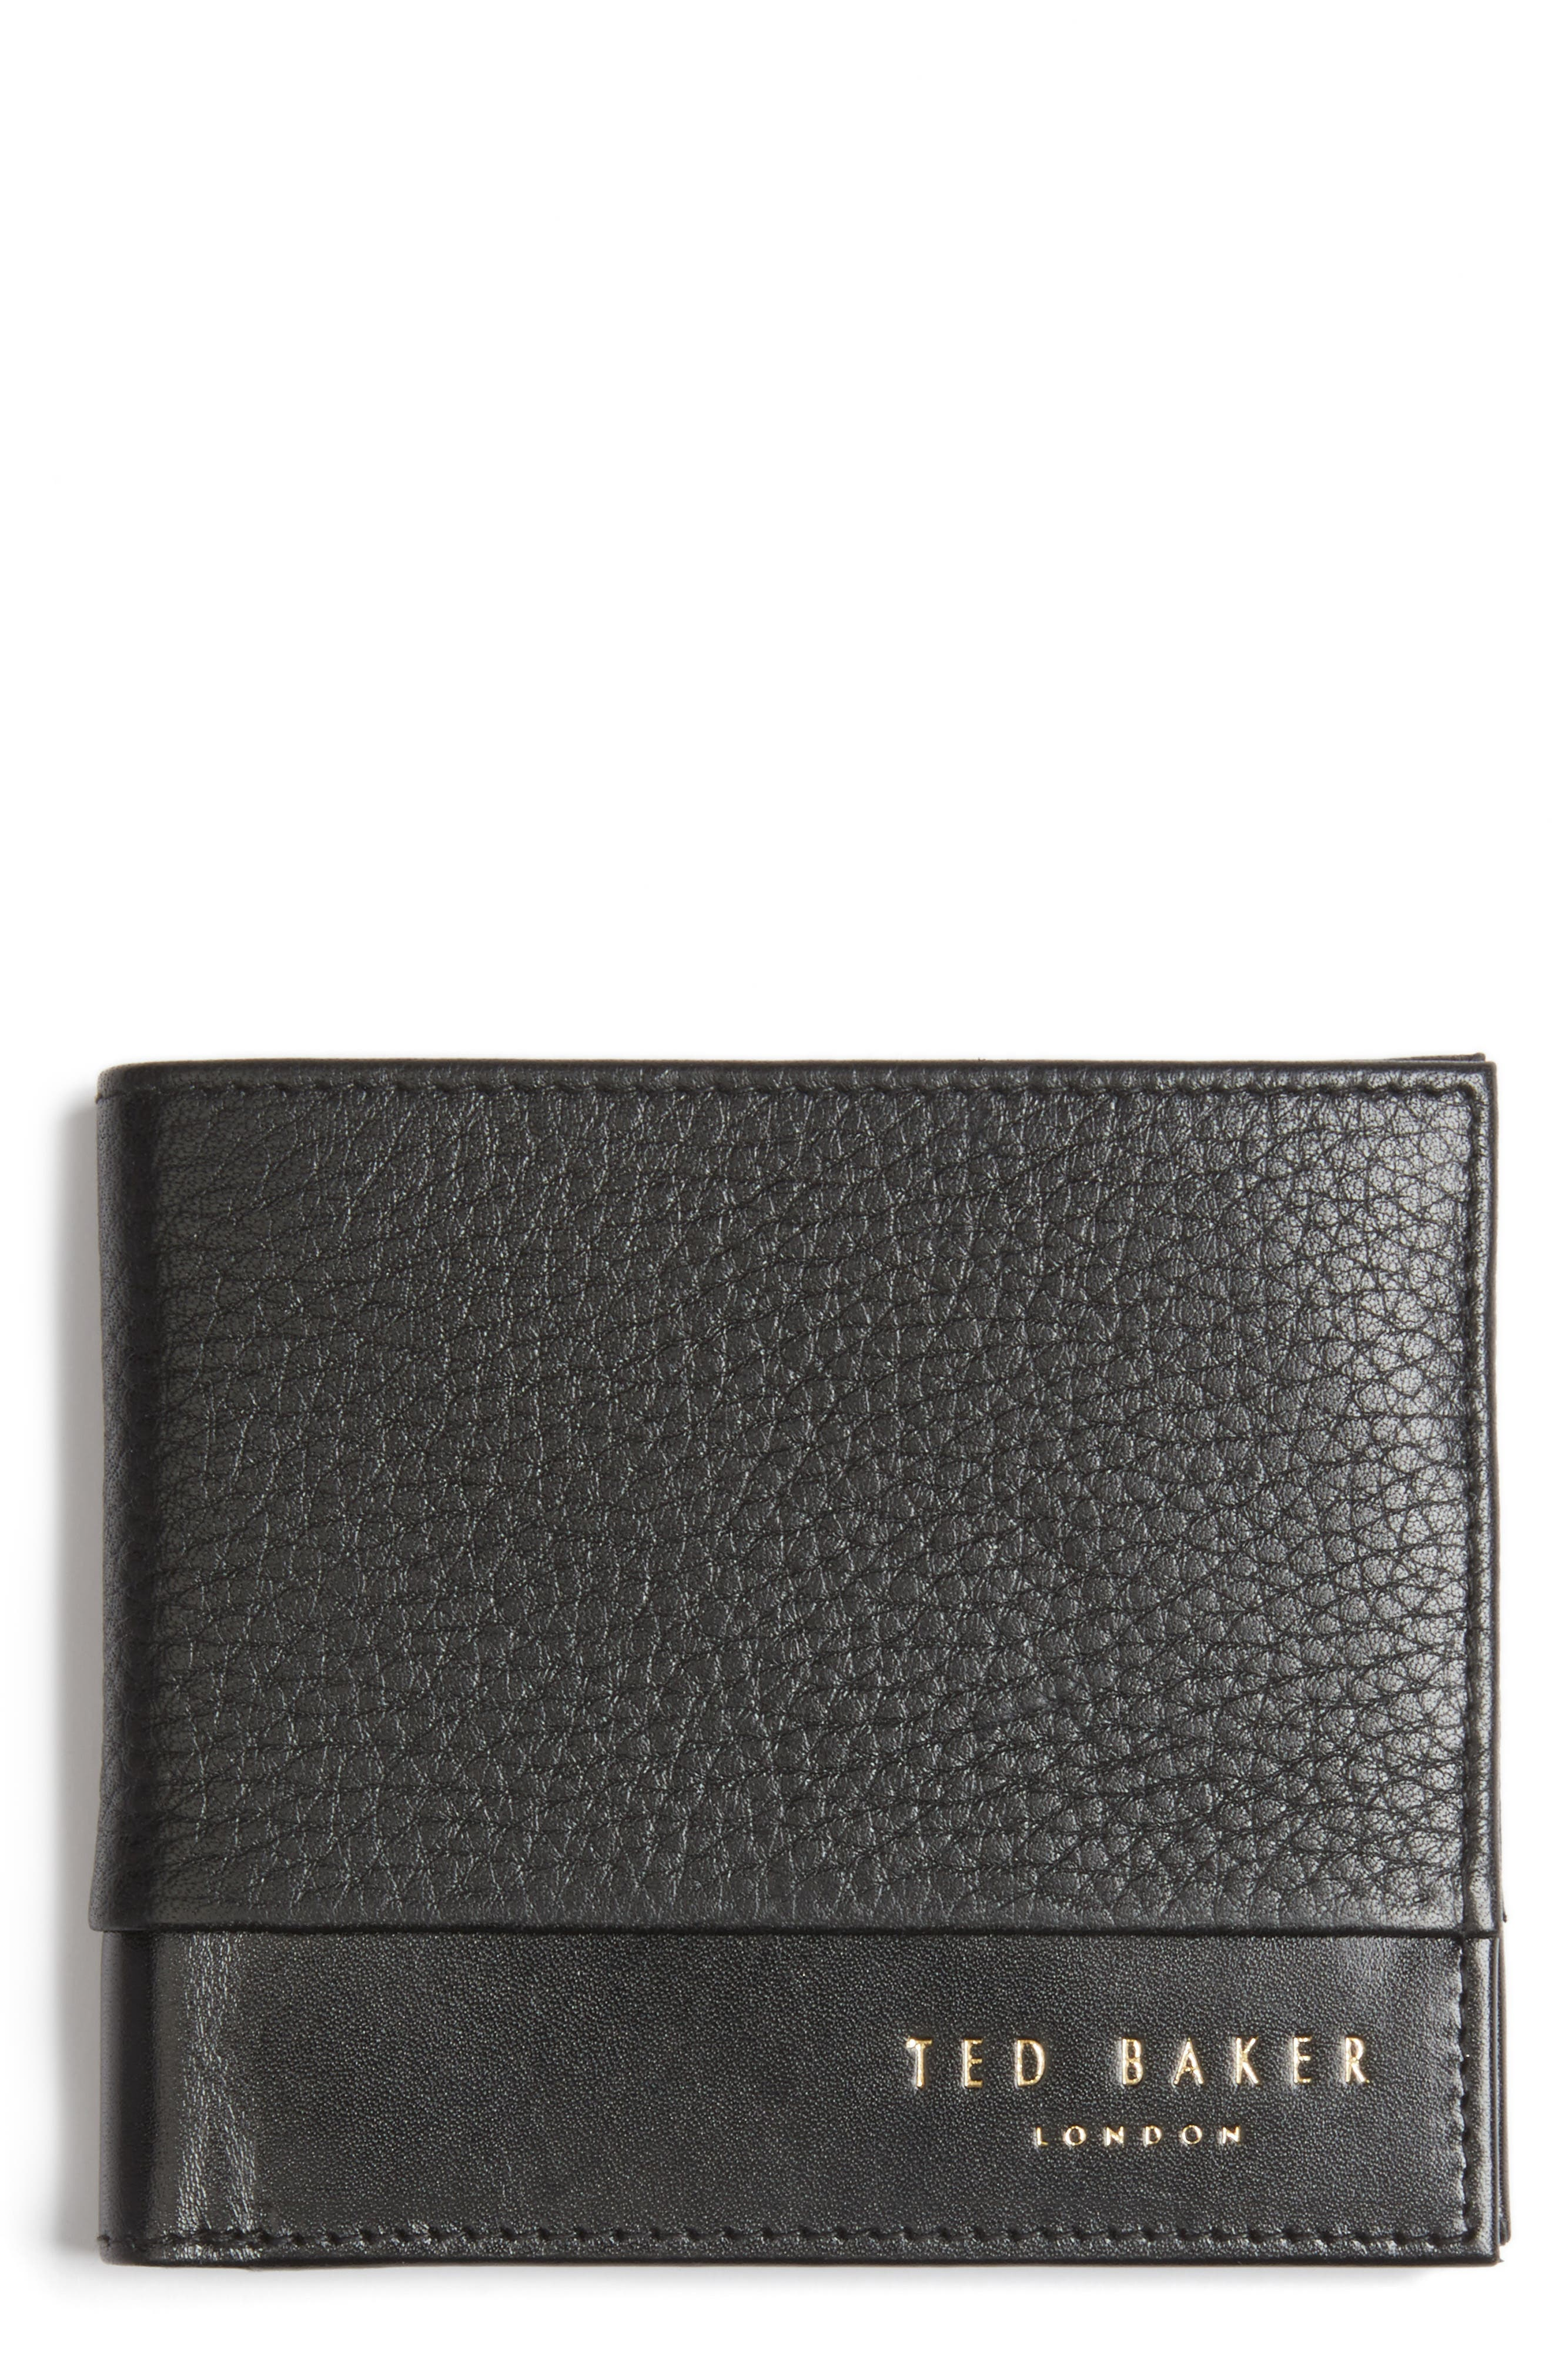 Mixdup Leather Wallet,                         Main,                         color, 001